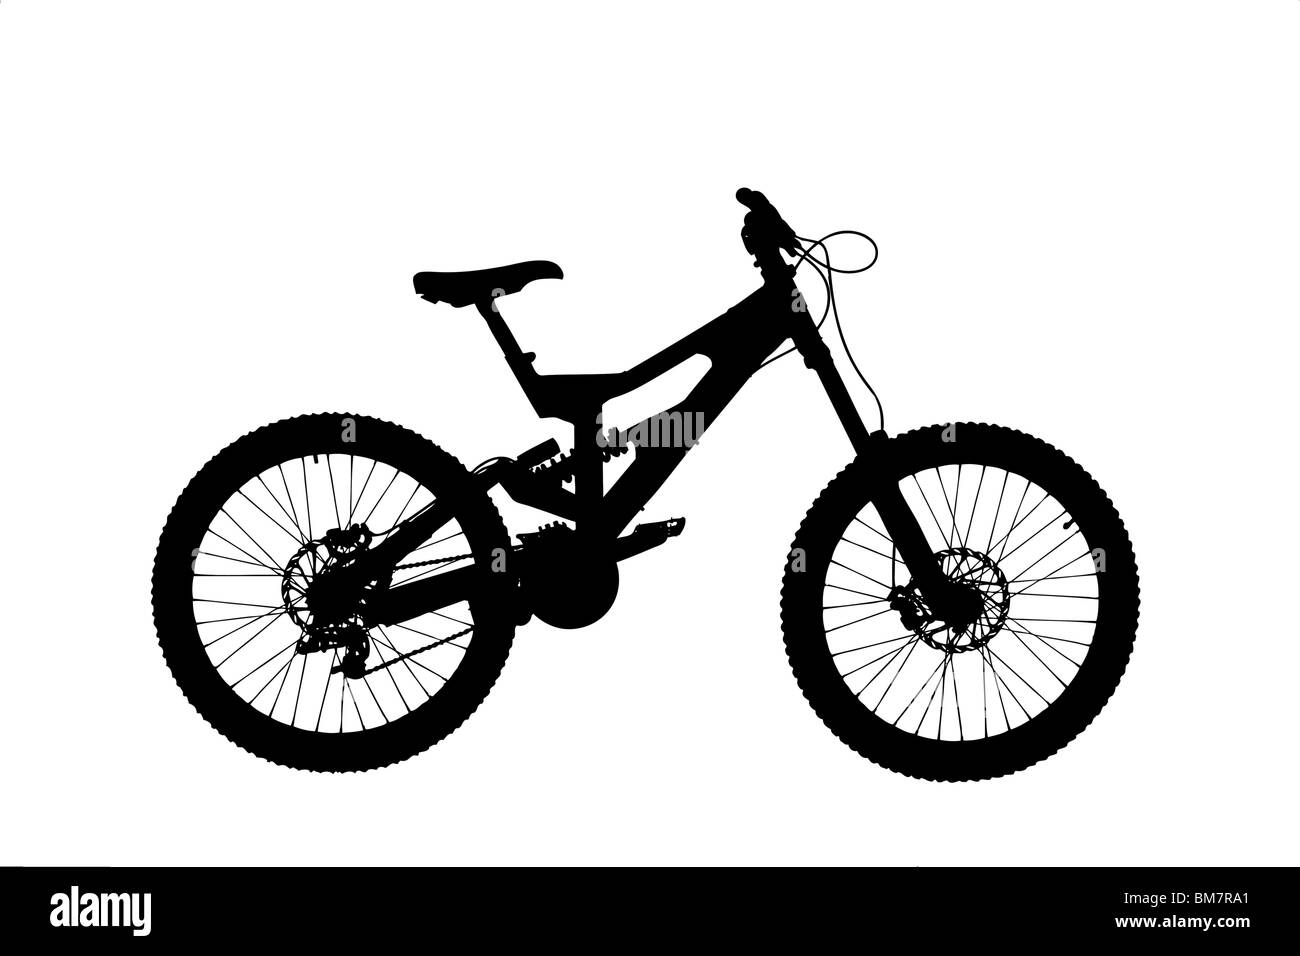 A silhouette of a mountain bike - Stock Image